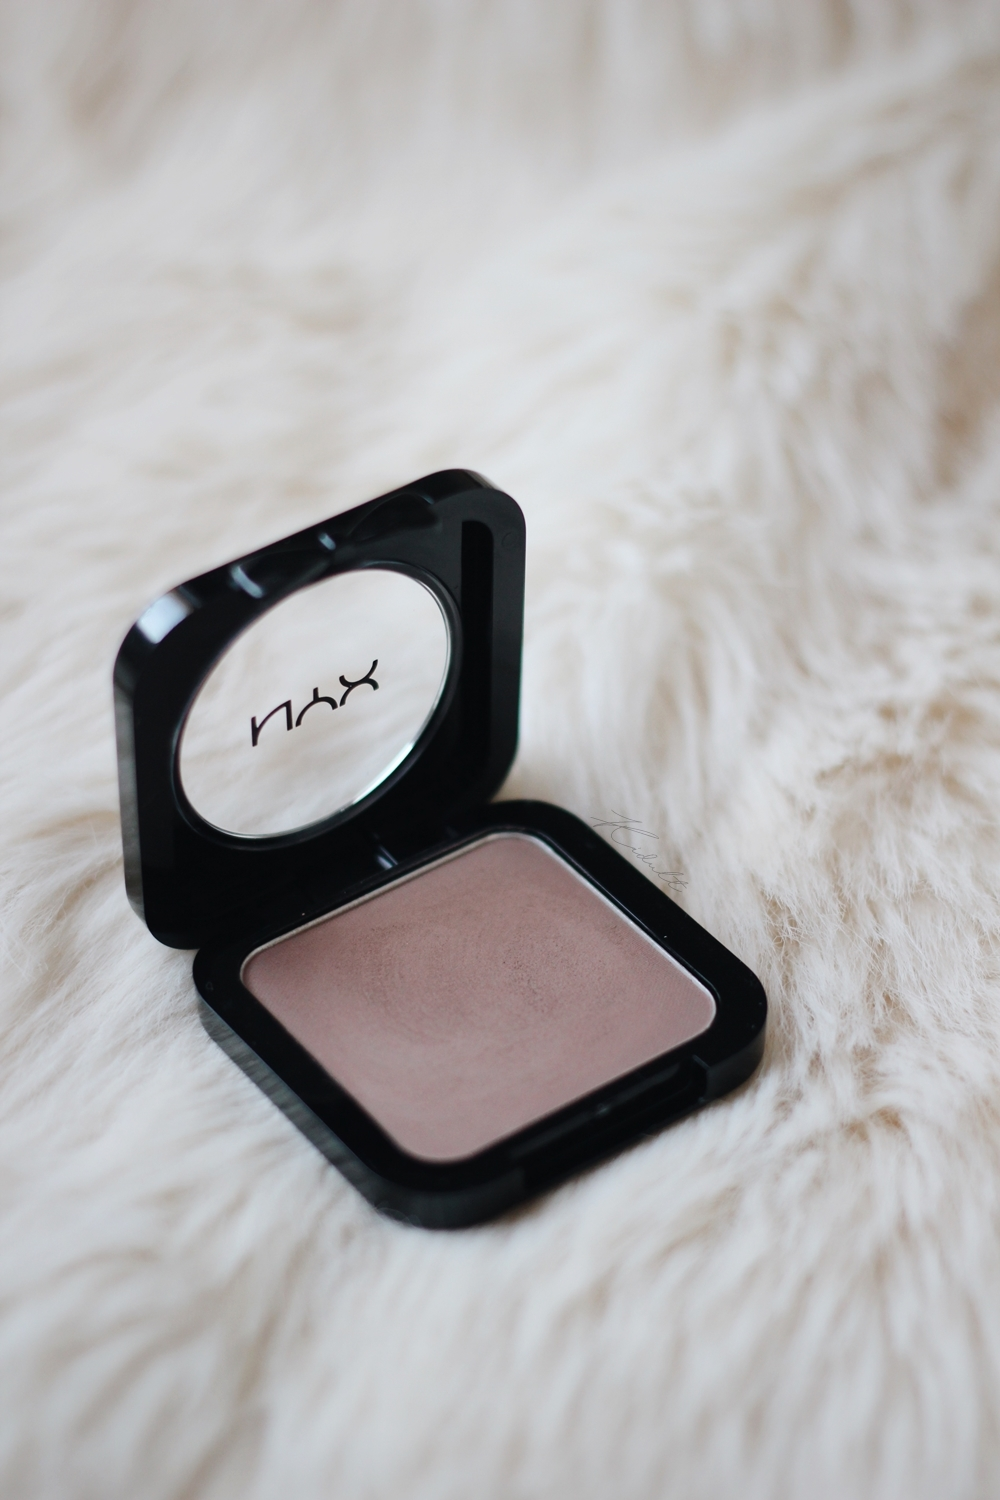 nyx high defination blush taupe 2